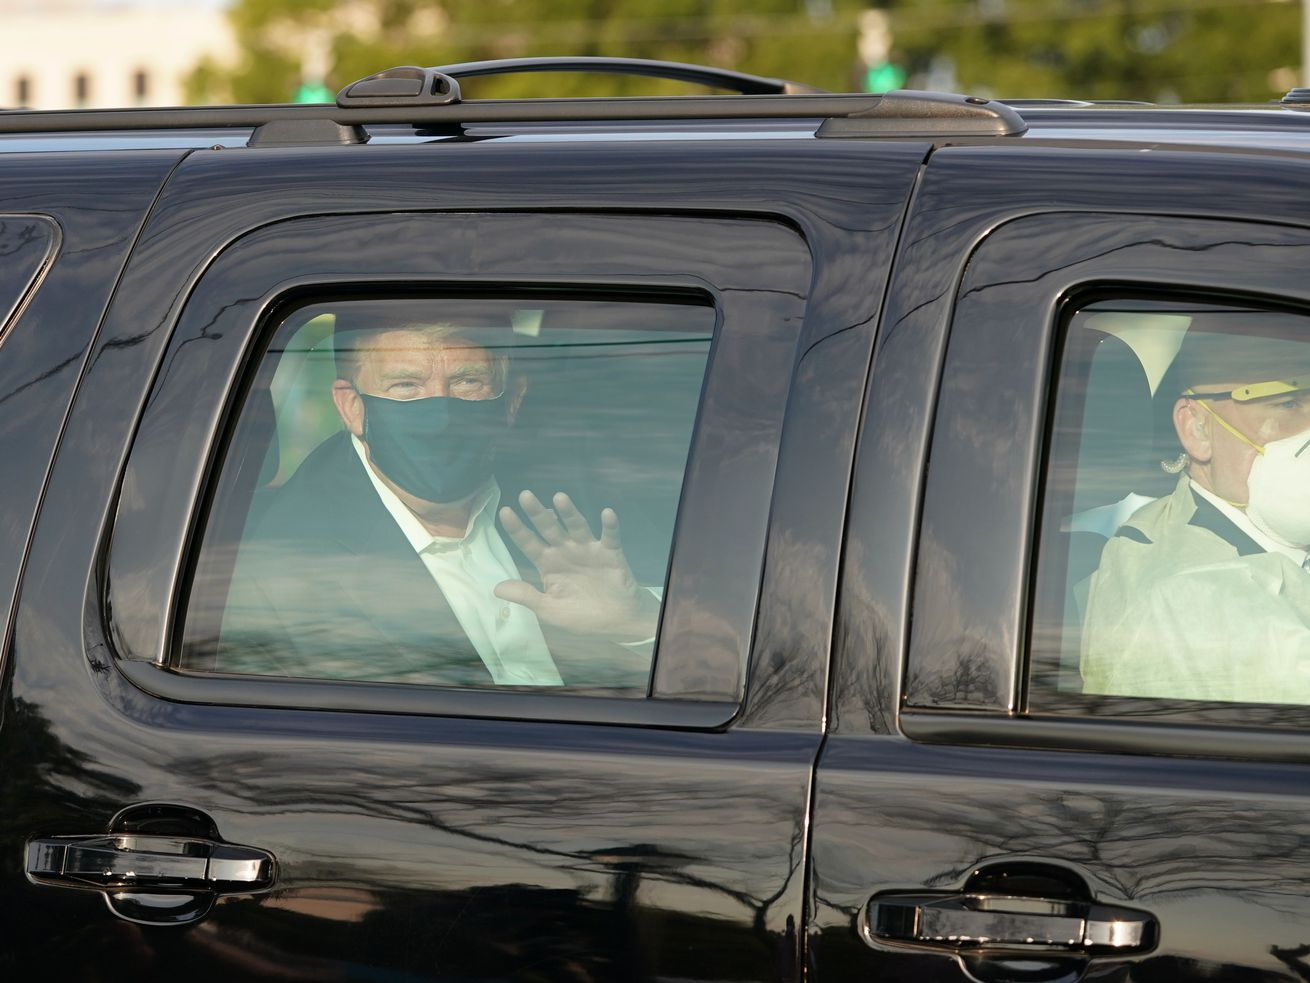 President Donald Trump waving in the back of a motorcade outside of Walter Reed Medical Center.